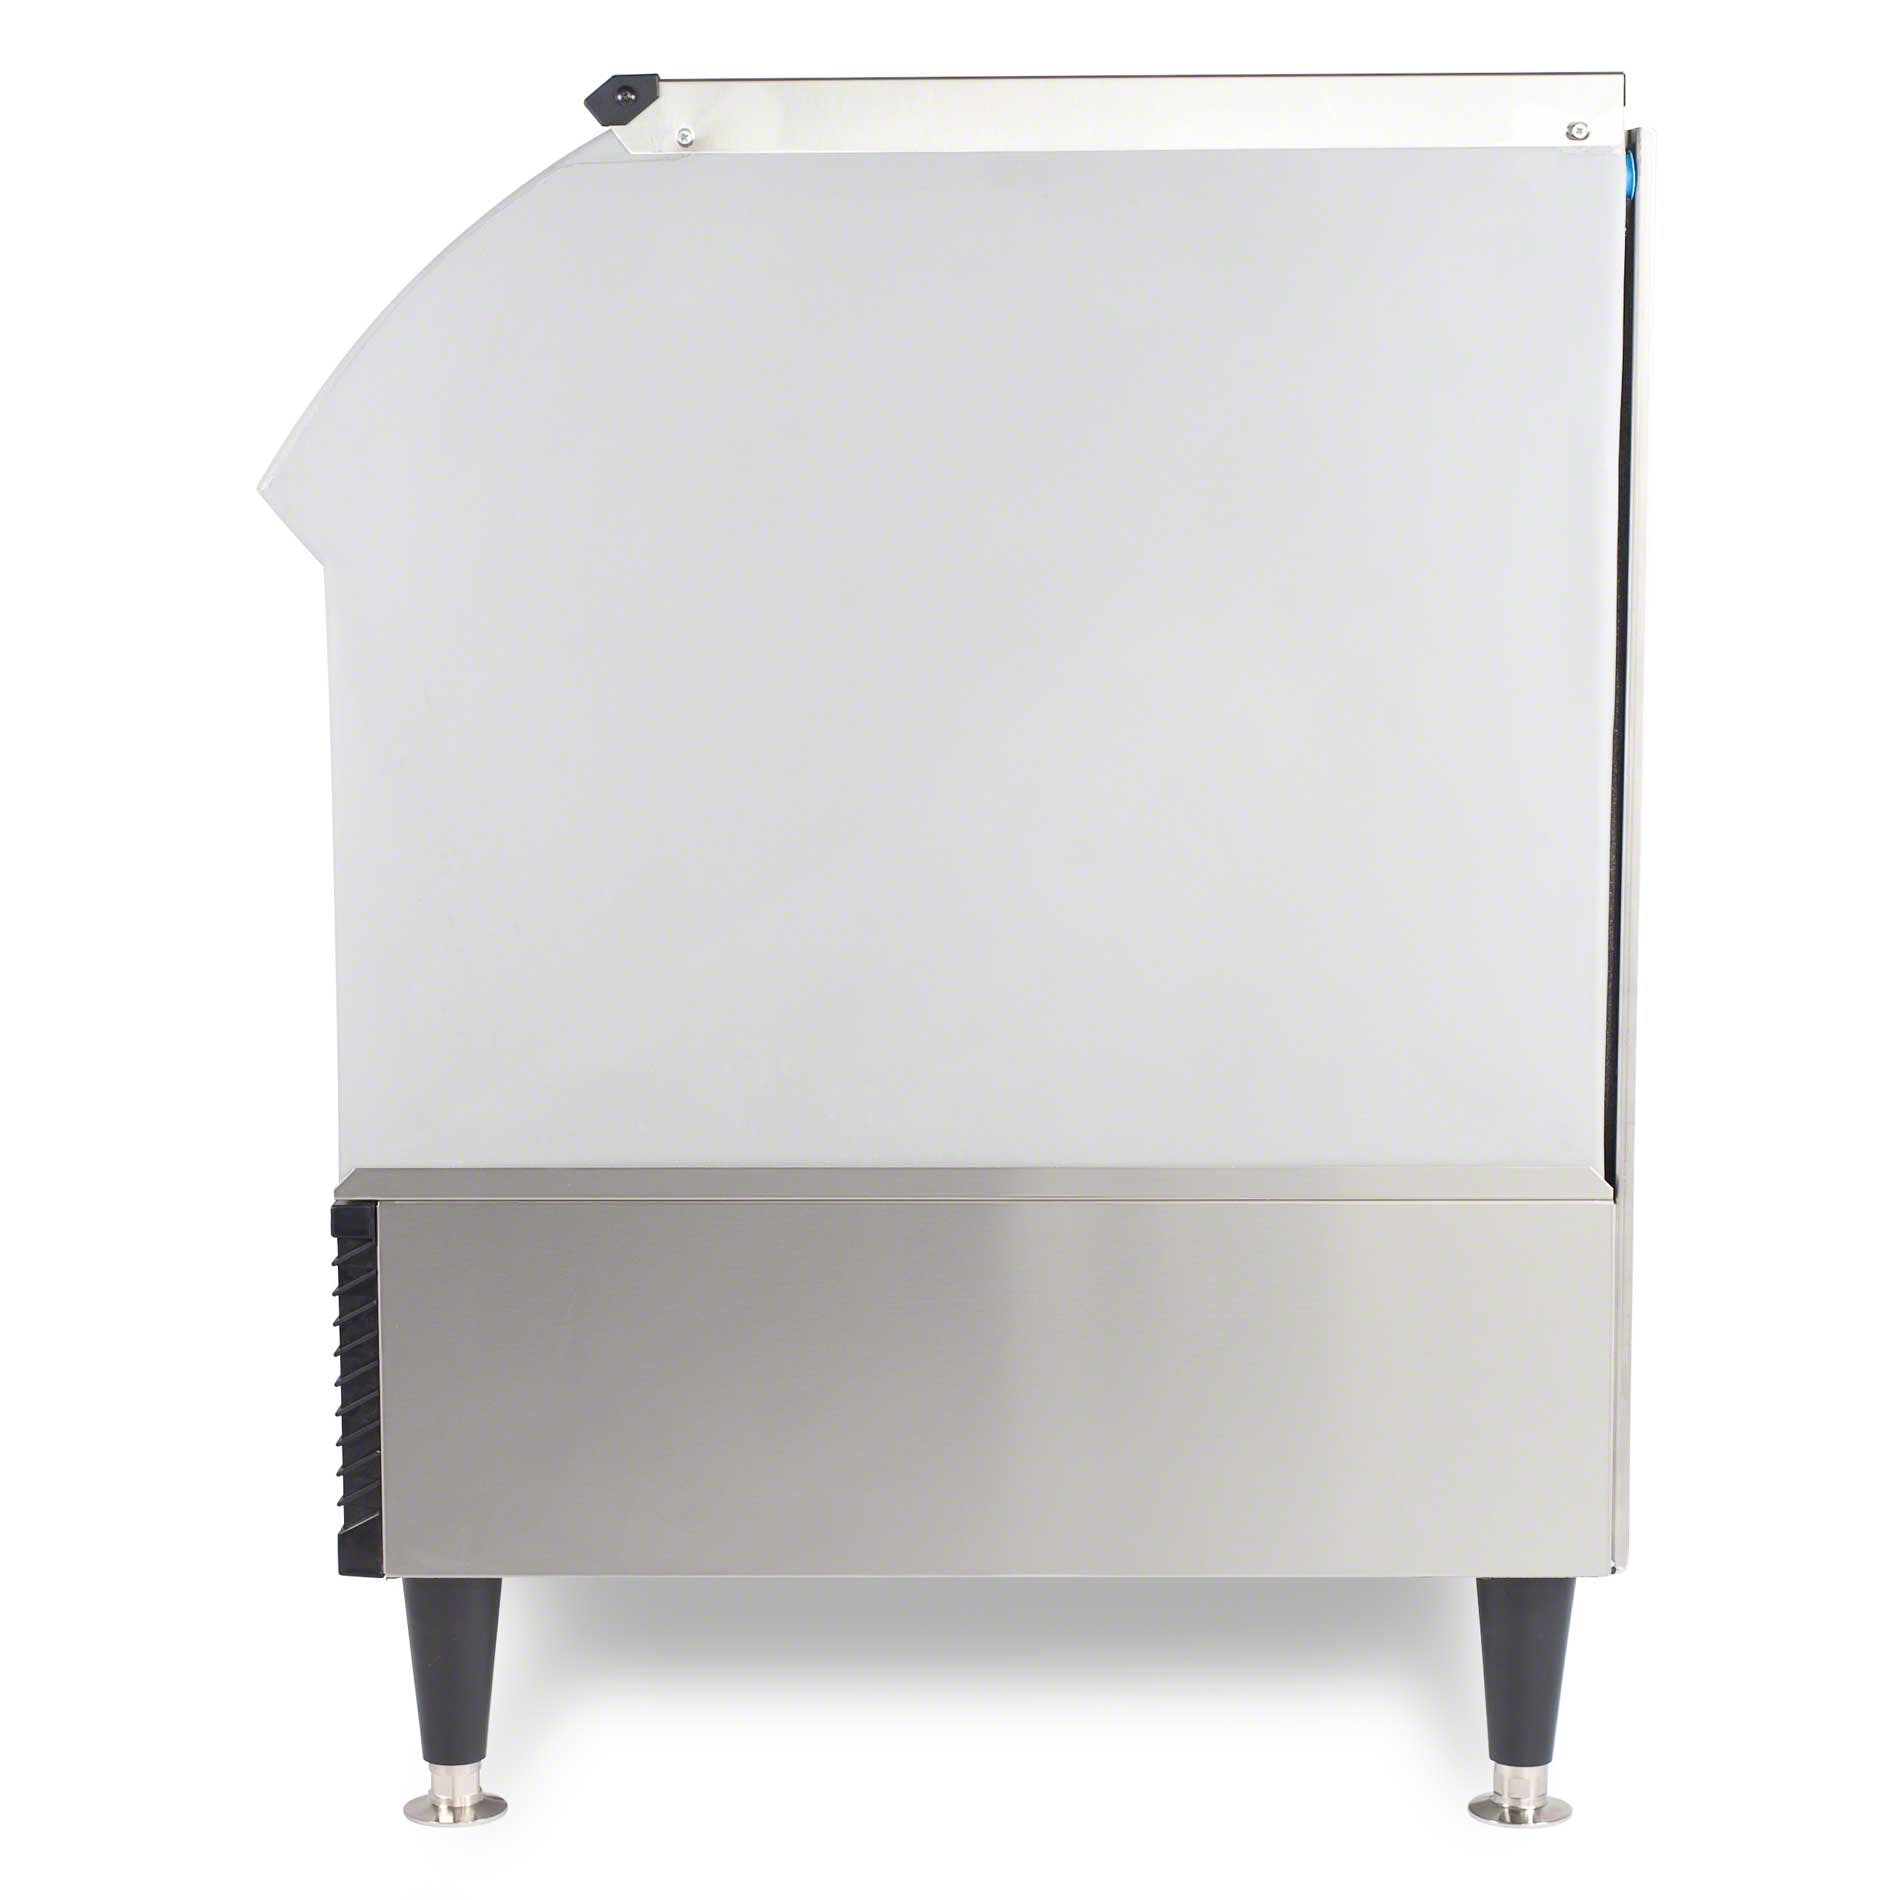 Ice-O-Matic - ICEU220FW 251 lb Self-Contained Full Cube Ice Machine Ice machine sold by Food Service Warehouse